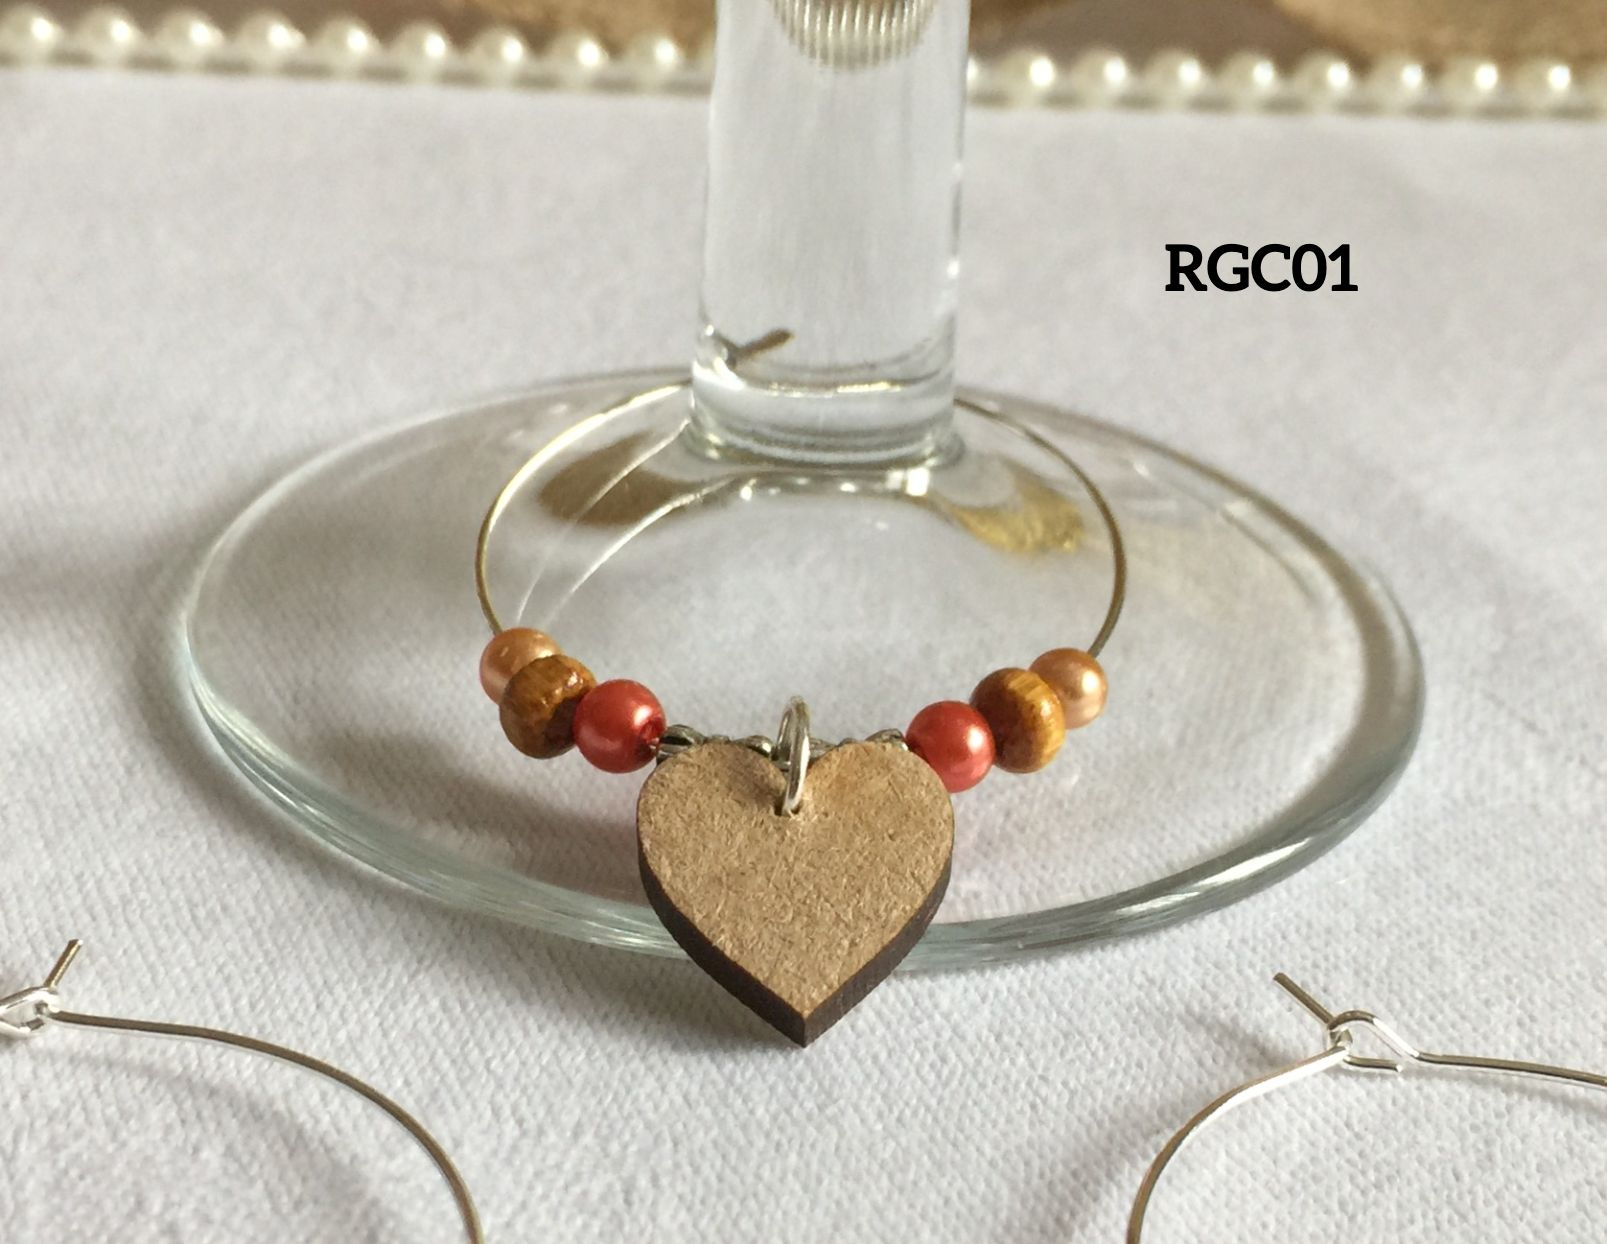 Rustic Wooden Heart Wine Glass Ring Charm